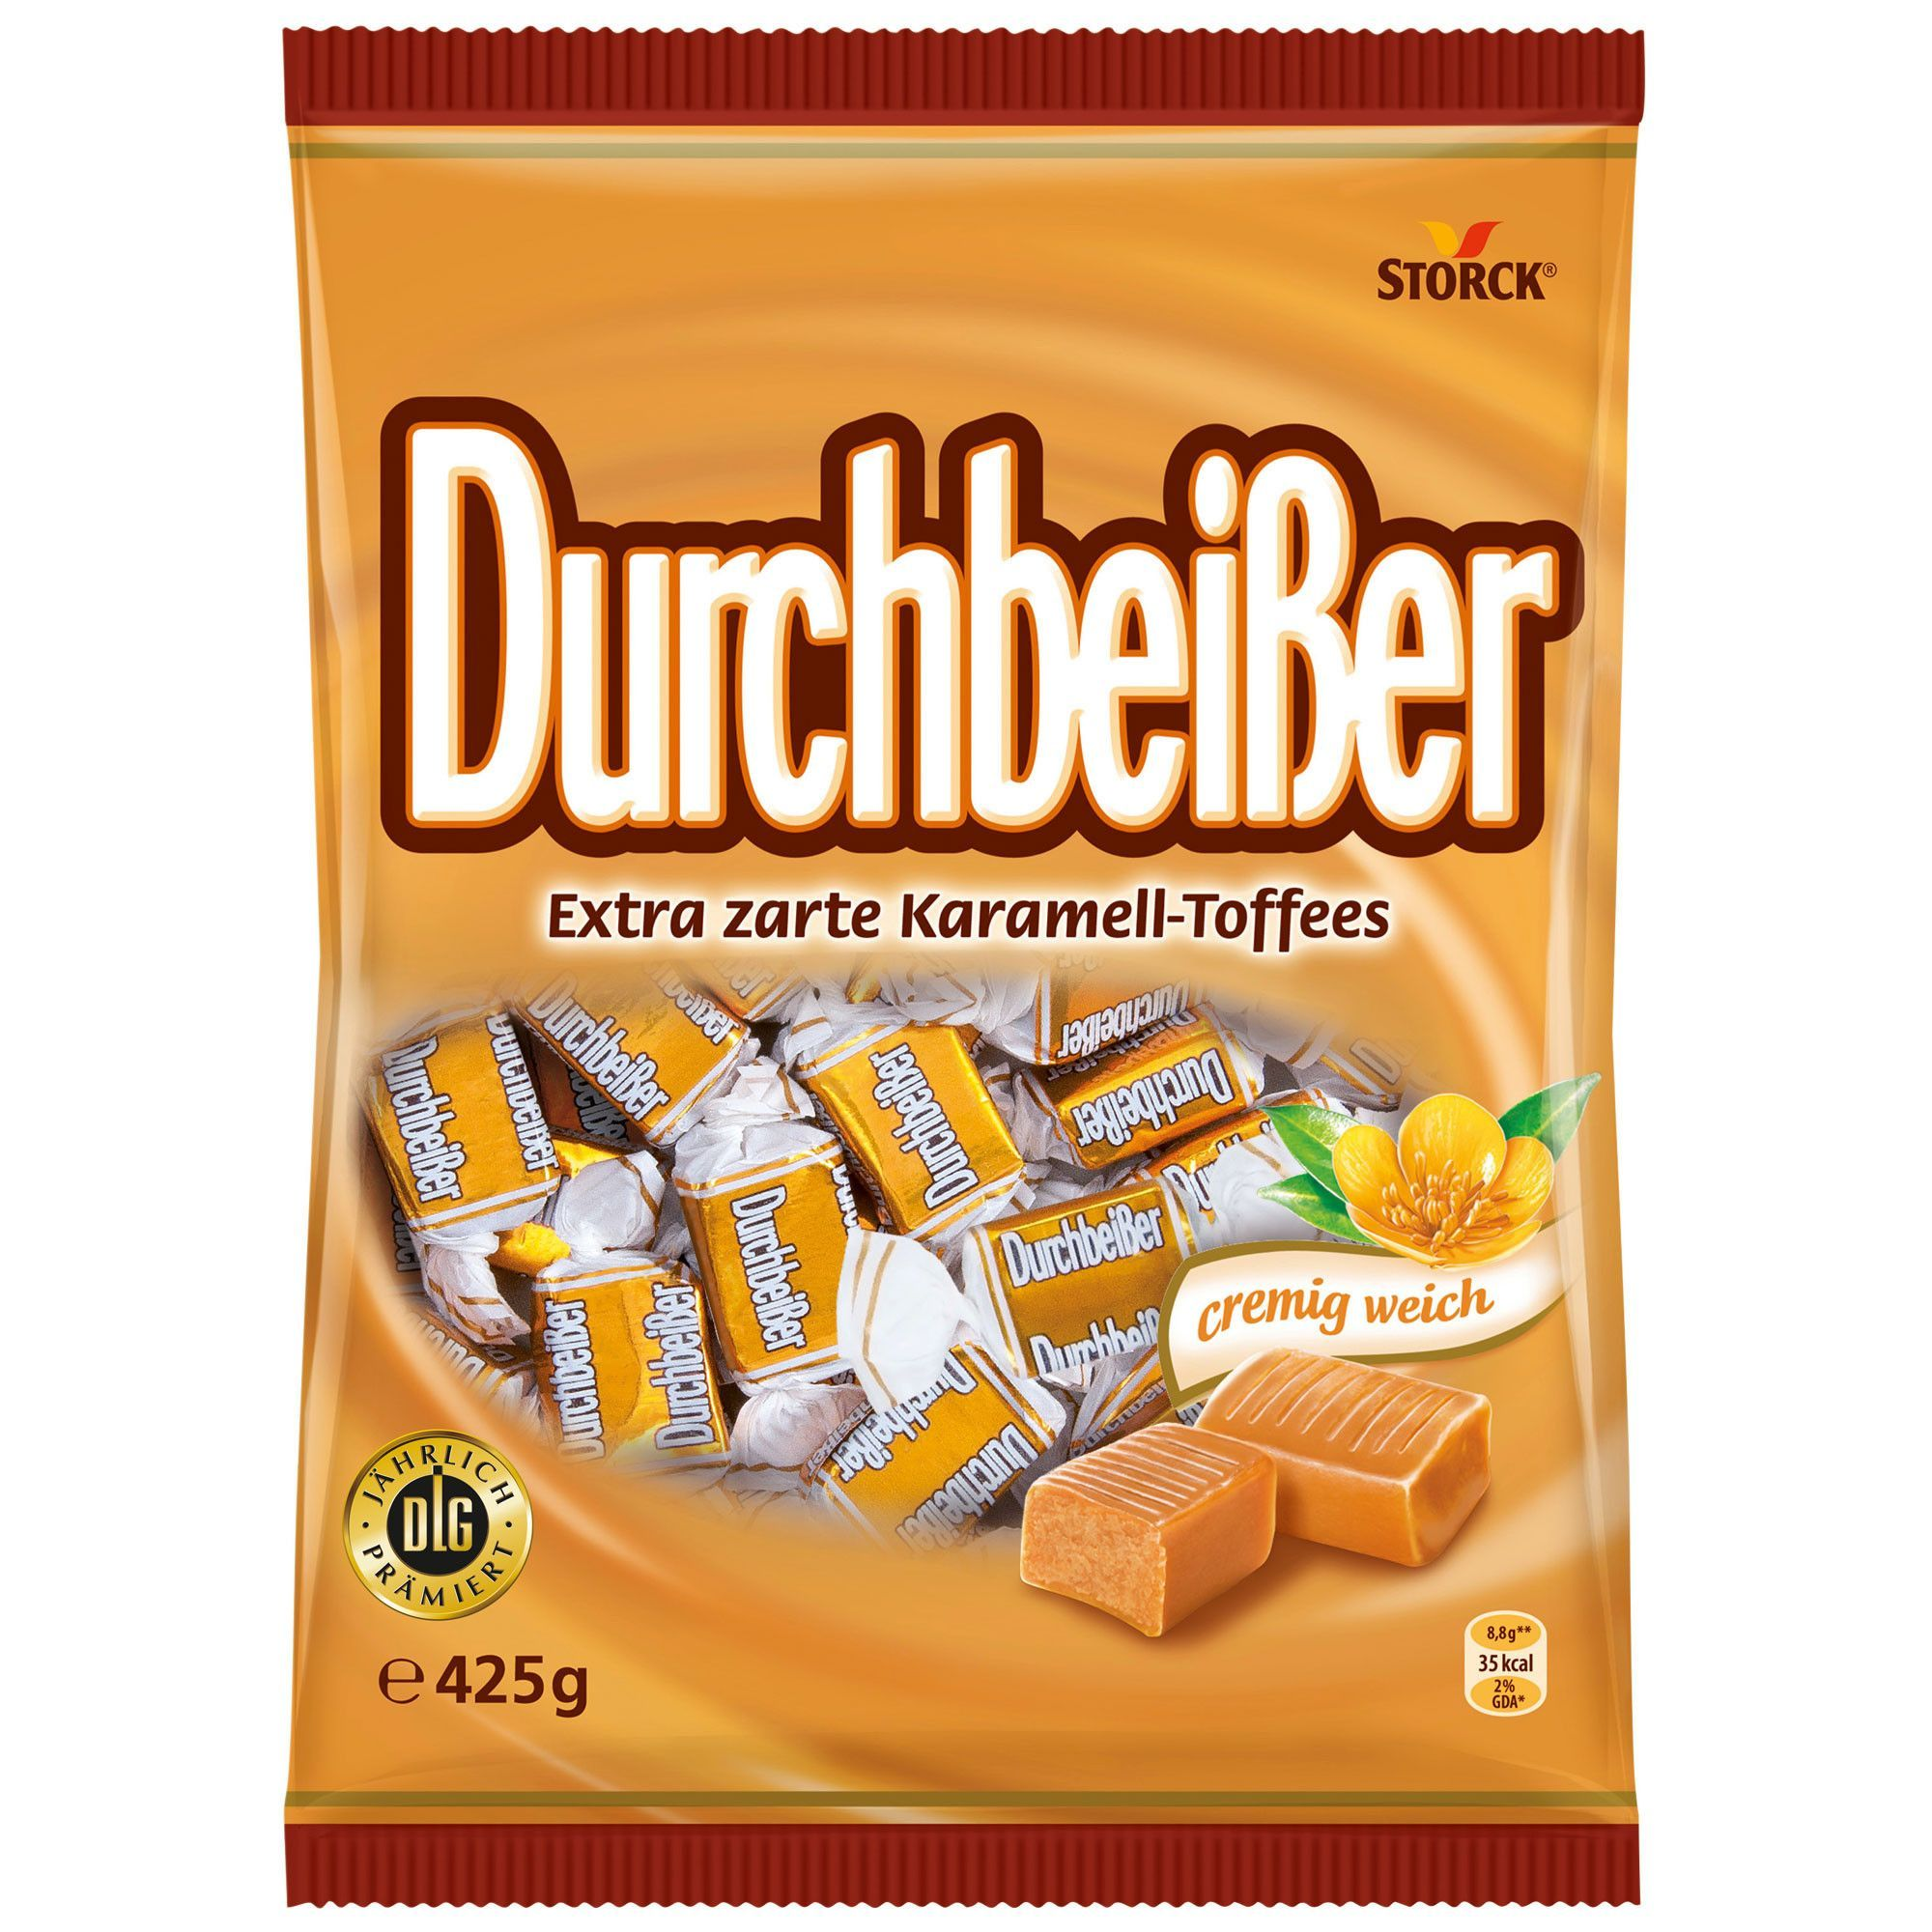 in usa storck durschbeisser toffee candies 425g made in germany products pinterest. Black Bedroom Furniture Sets. Home Design Ideas